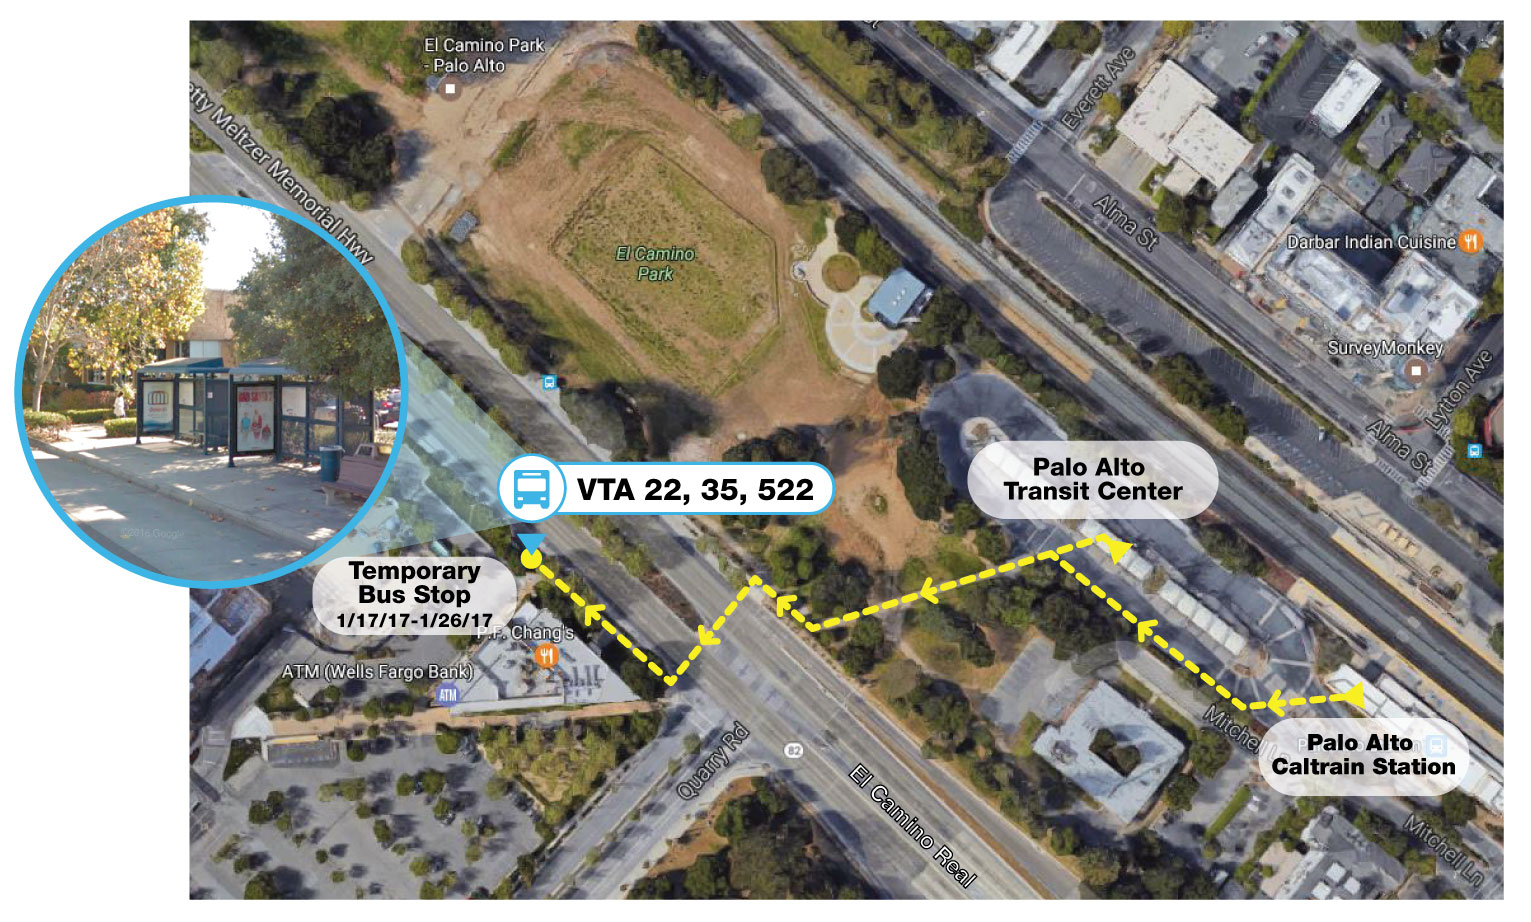 Palo Alto Transit Center detour map